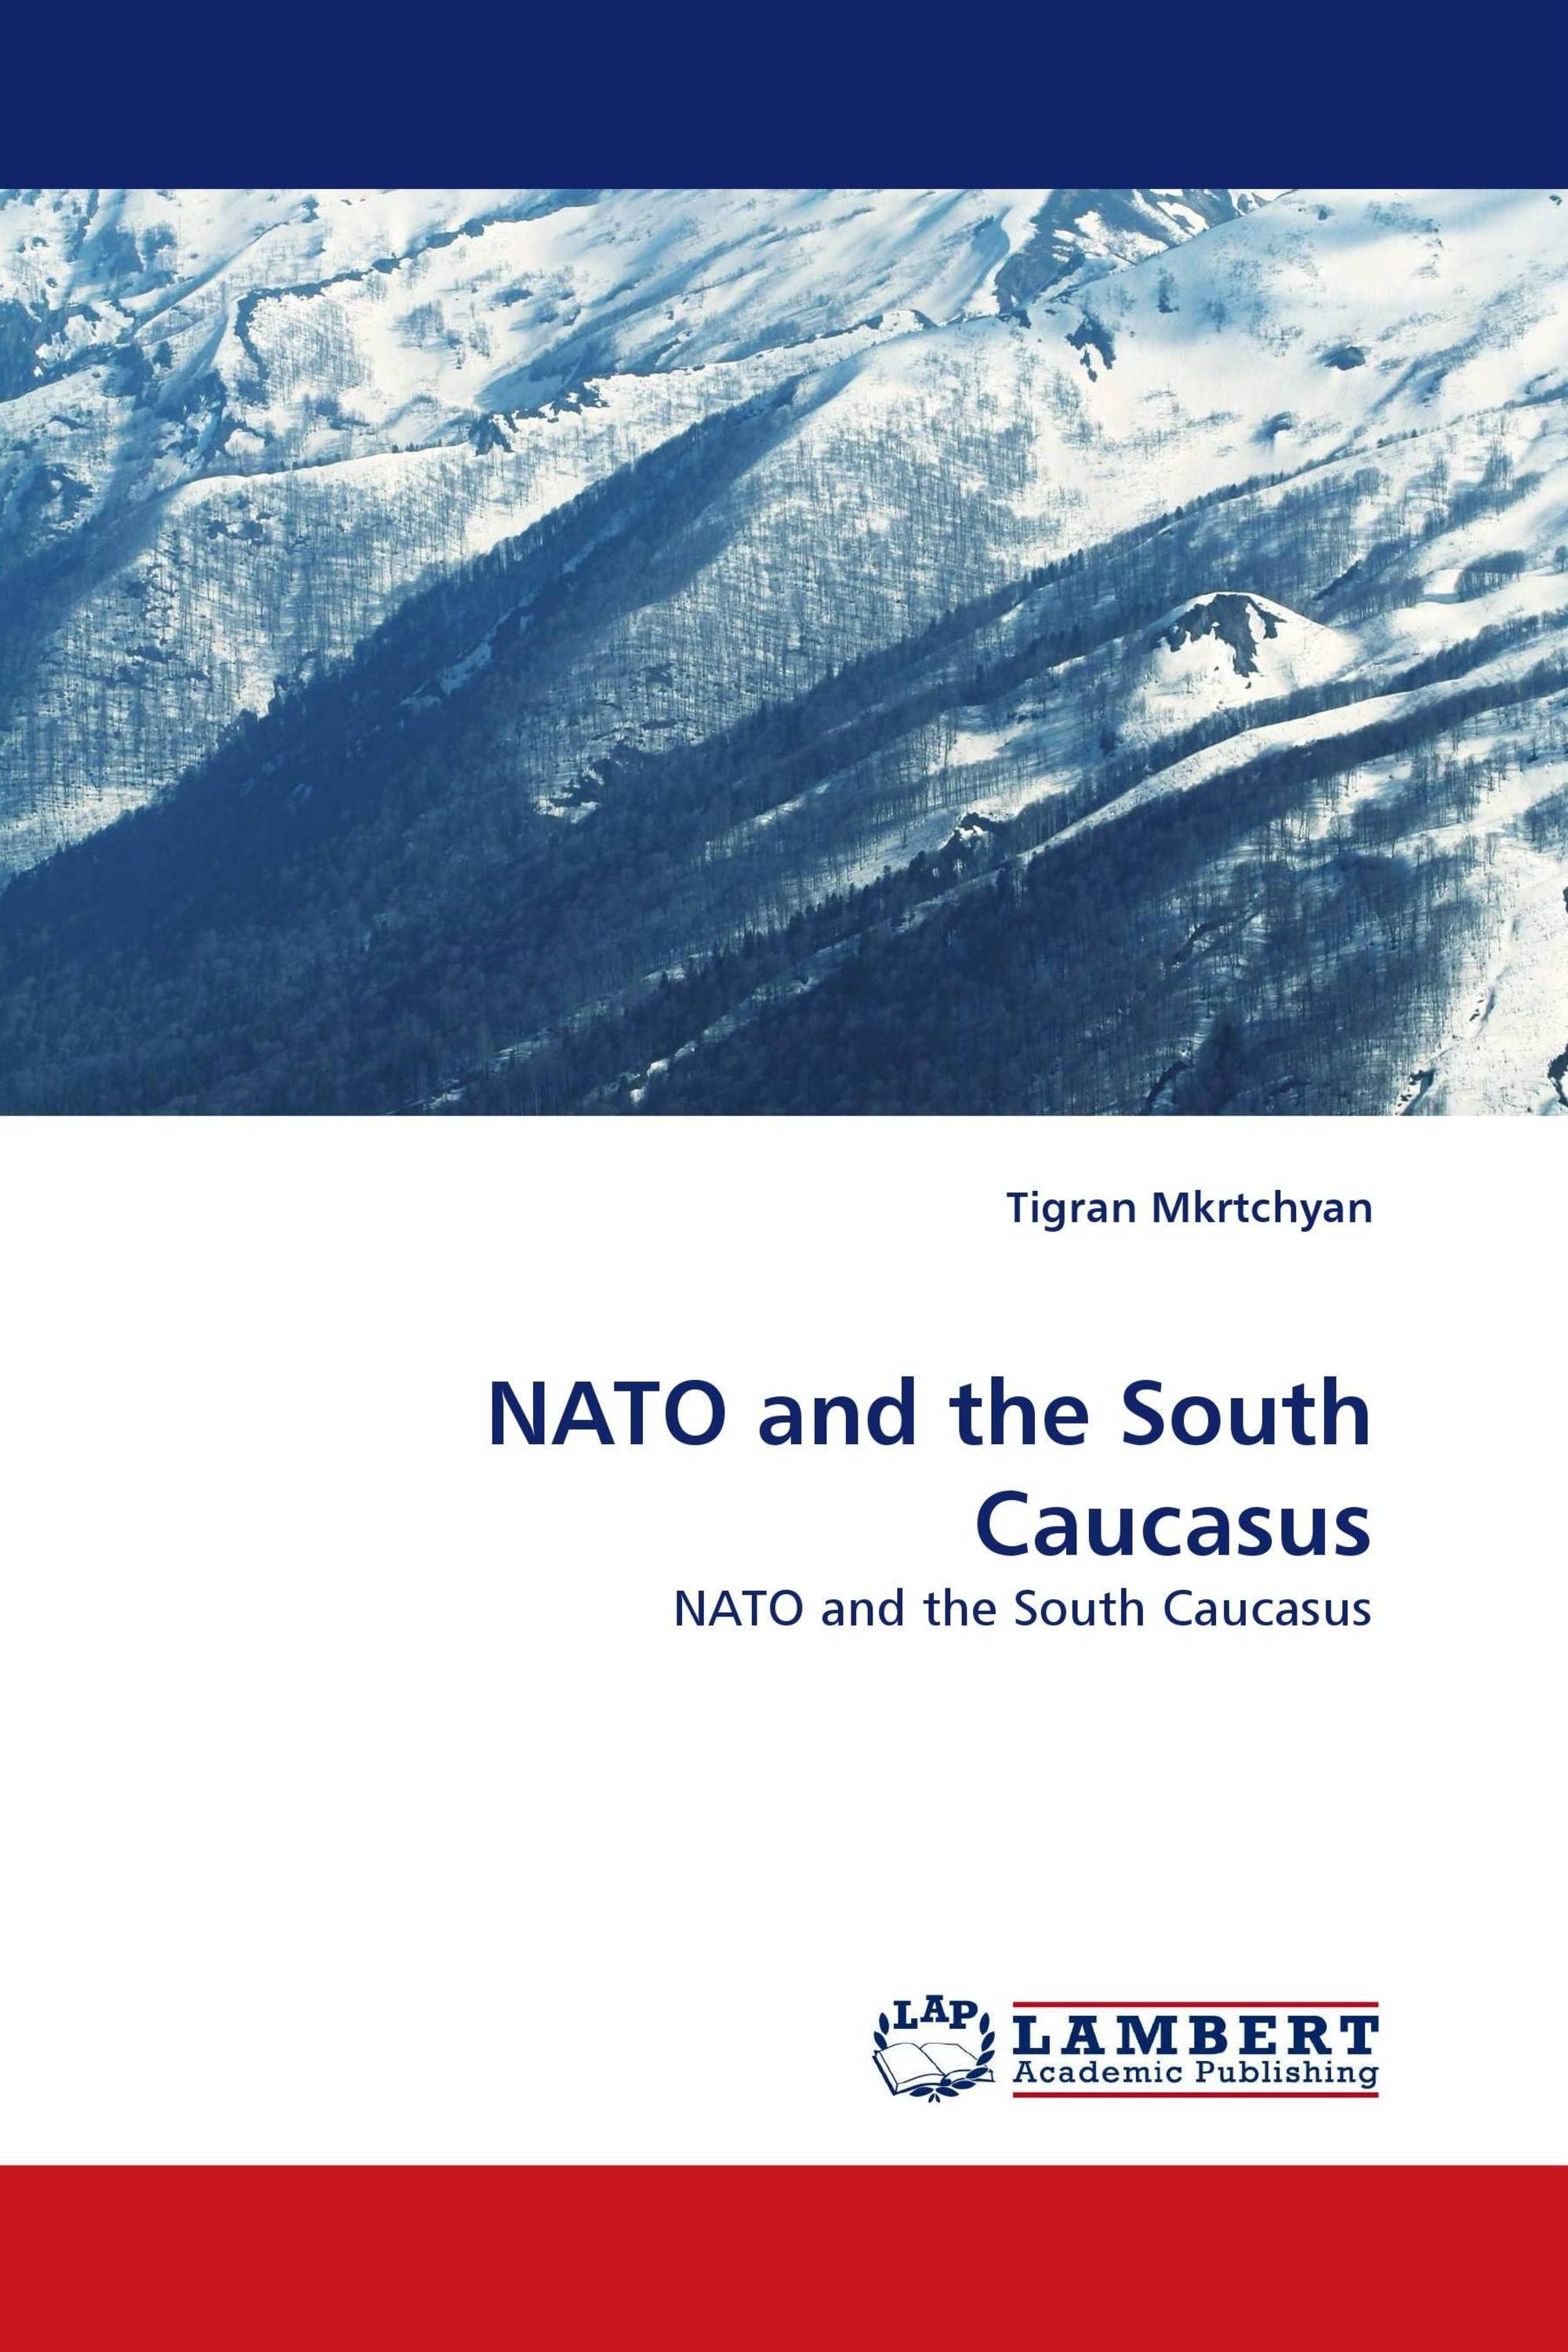 an analysis of us policy towards nato Concept development and experimentation policy and process: how analysis provides rigour rto-mp-sas-081 21 - 3 processes cd&e is one of the tools that drive nato's transformation by enabling the structured.